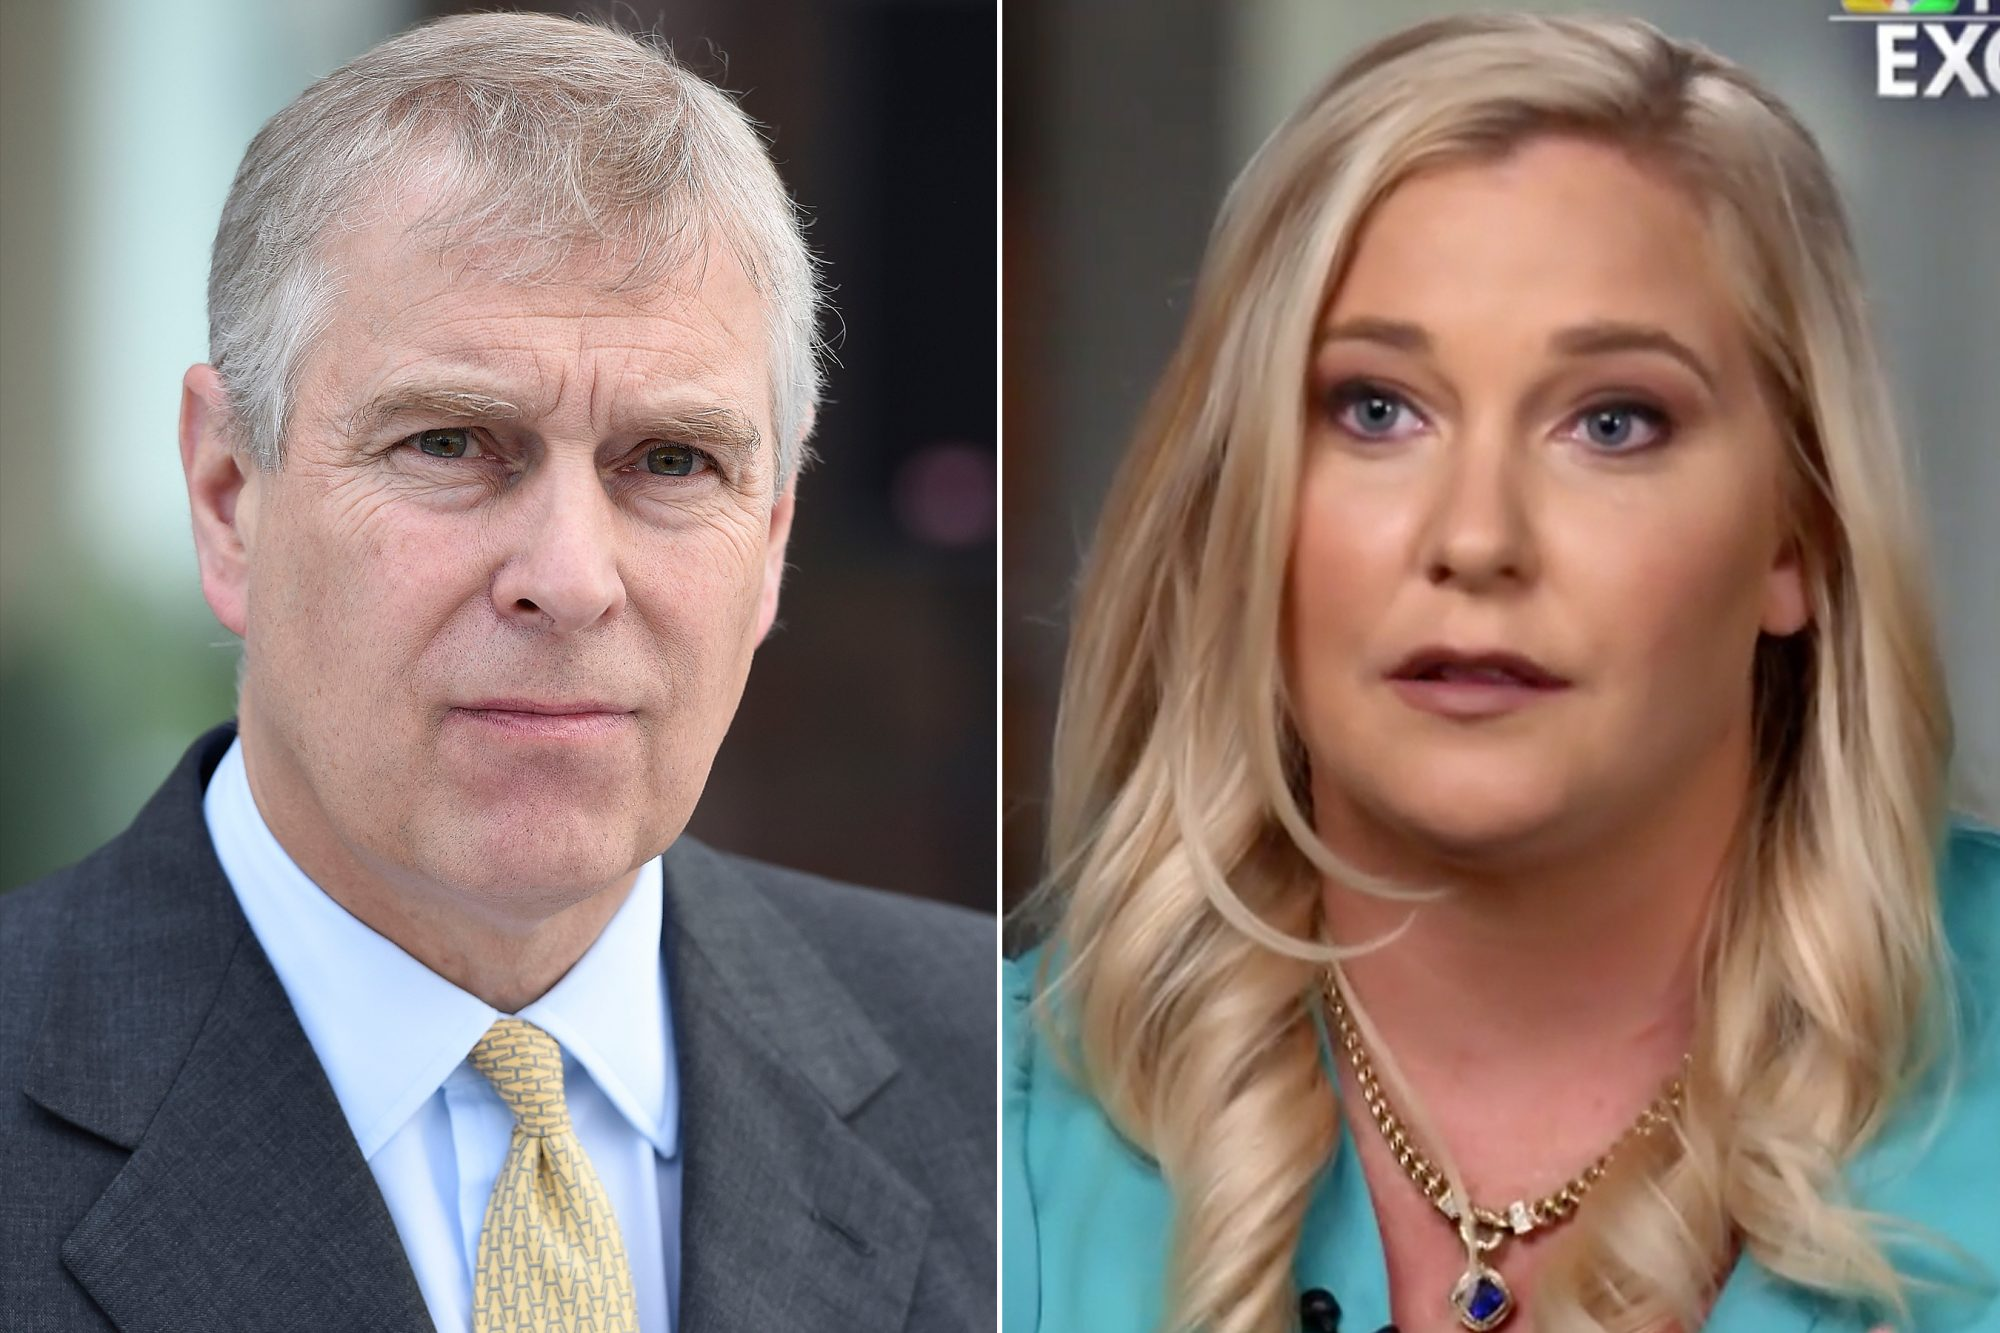 Prince Andrew S Accuser Responds To His Denials Of Sex Abuse